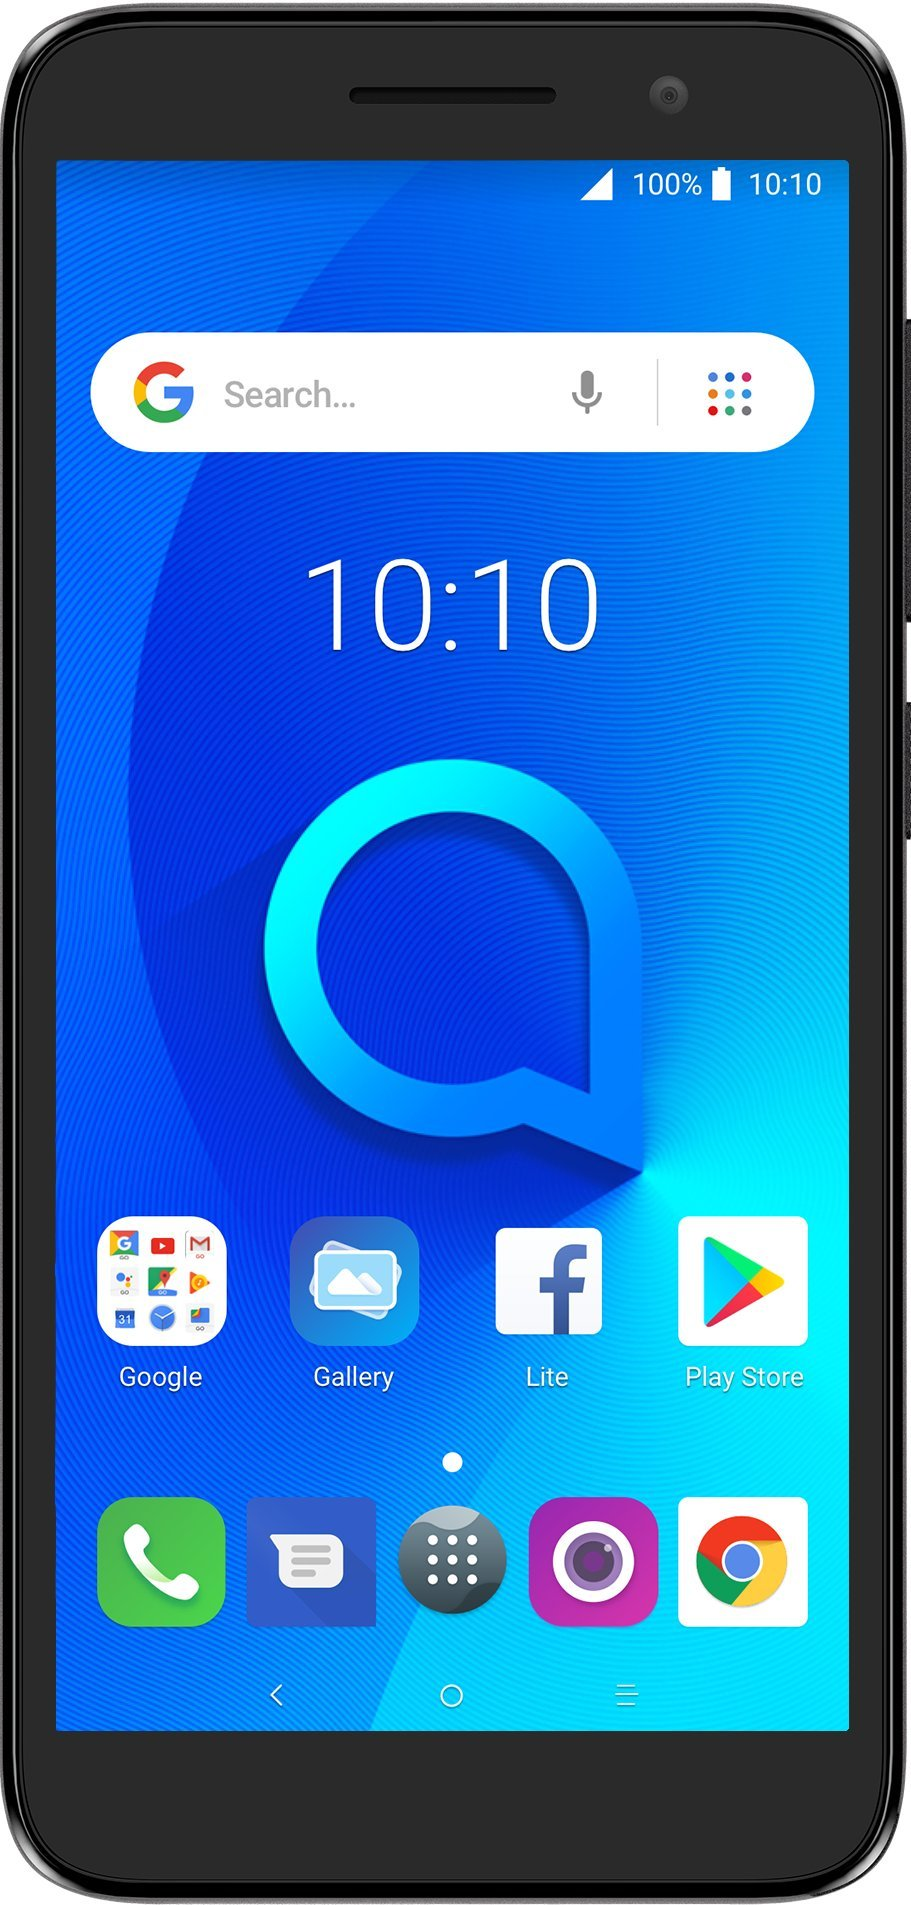 "Alcatel 1 Unlocked Smartphone (AT&T/T-Mobile) - 5"" 18:9 HD Display, 5MP Rear Camera, Android Oreo OS (Go Edition) - Metallic Black (U.S. Warranty)"